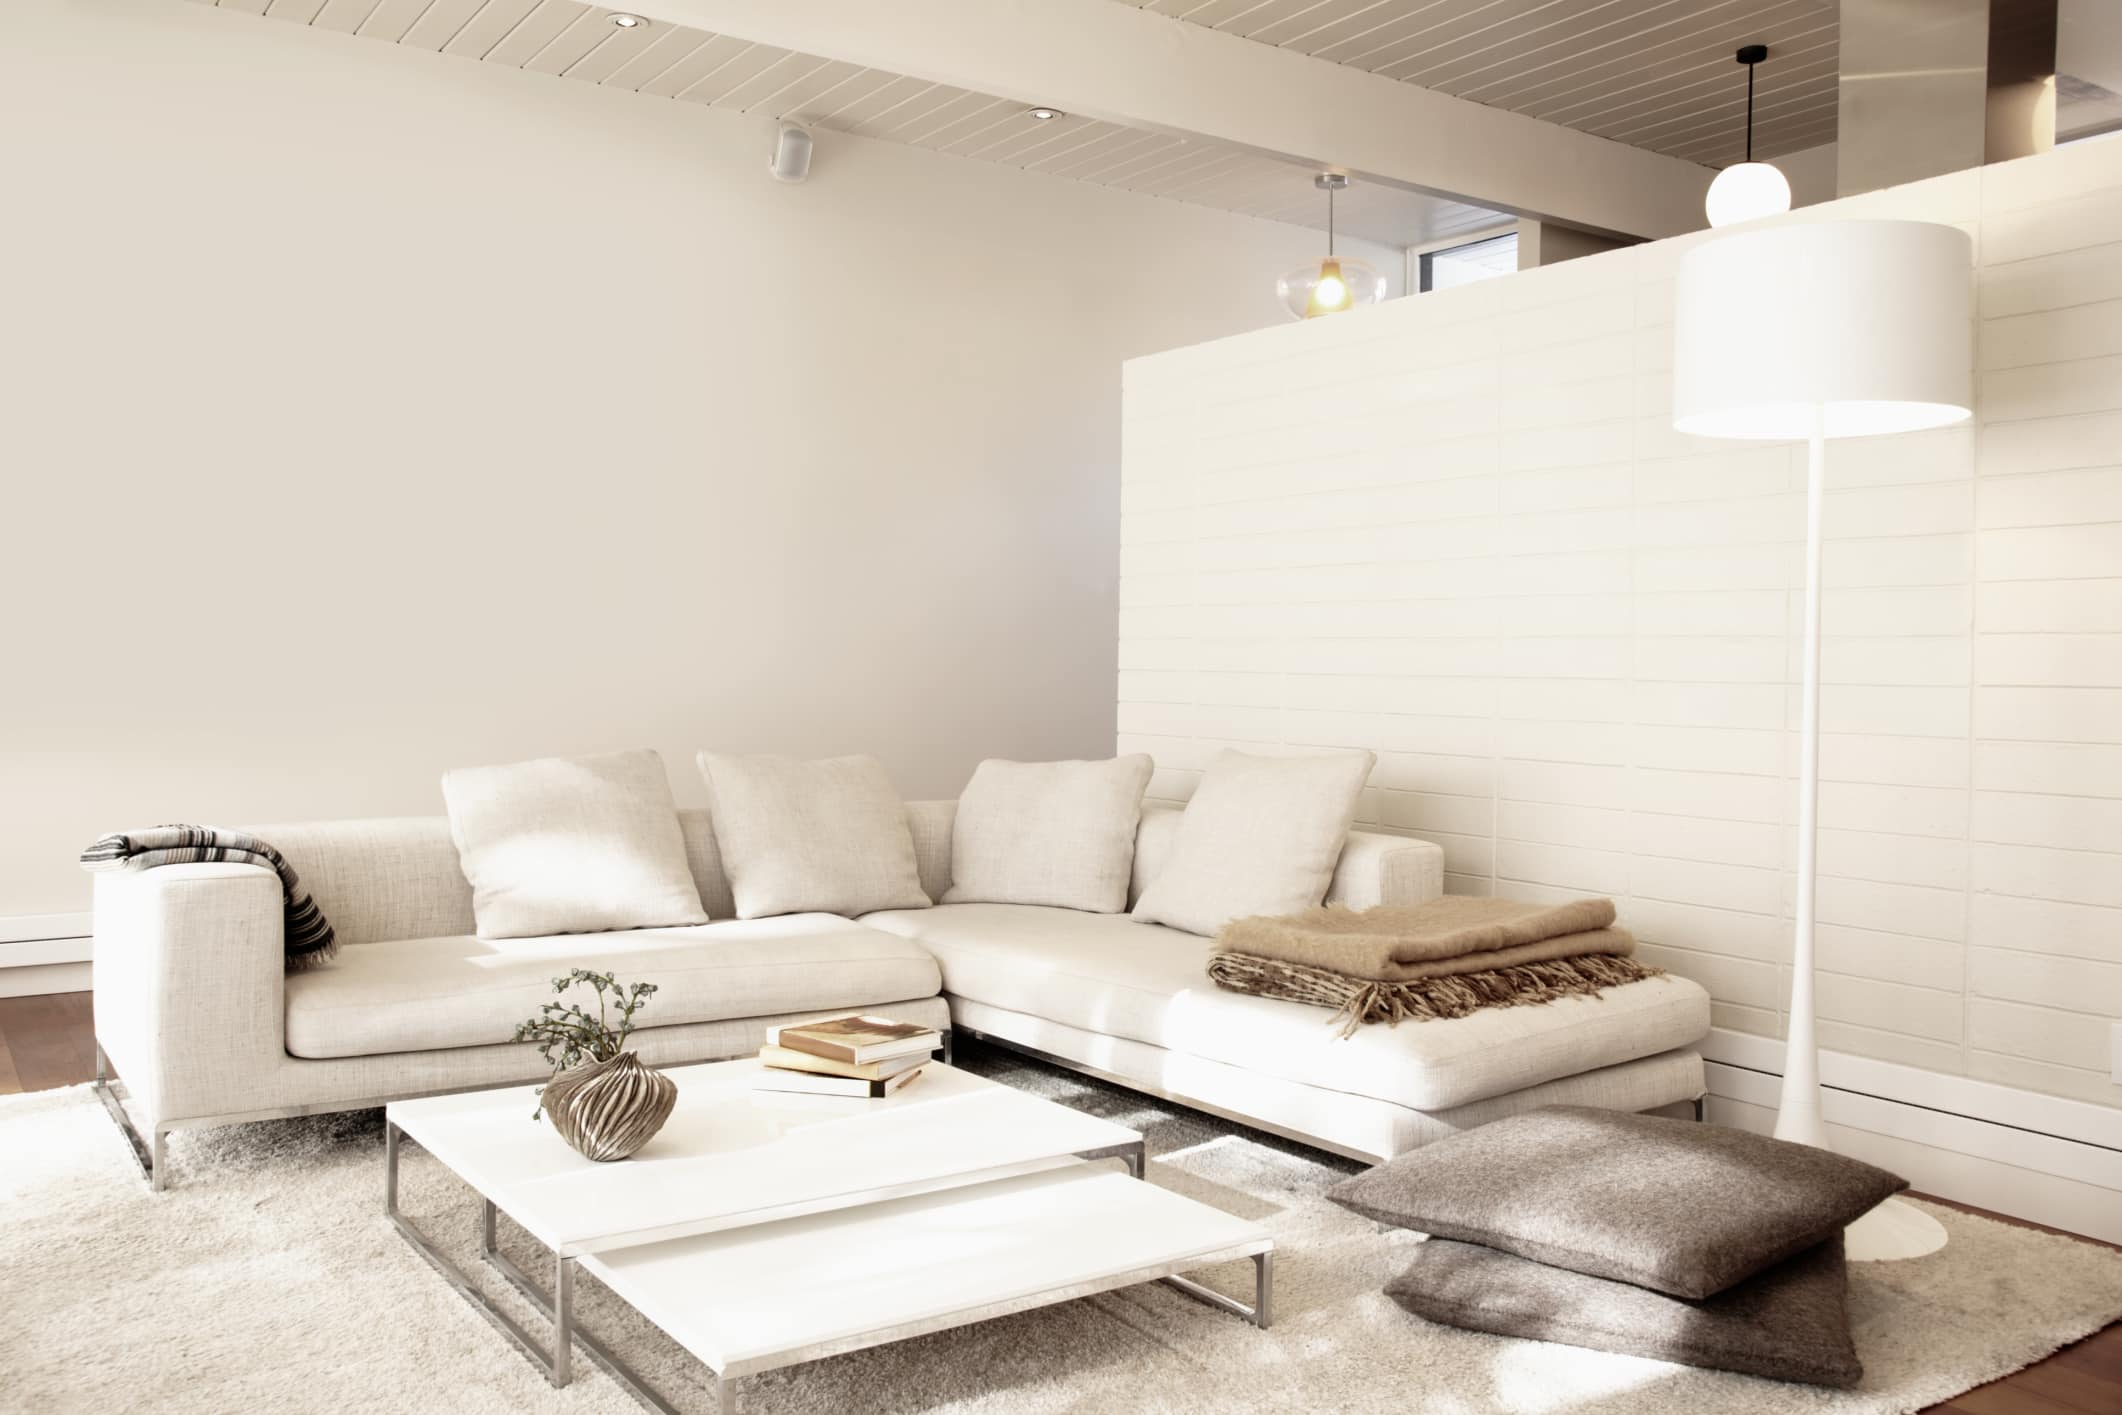 Feng Shui Interior Design and Decoration Philosophy. Ascetic living room with great corner sofa and low coffee table